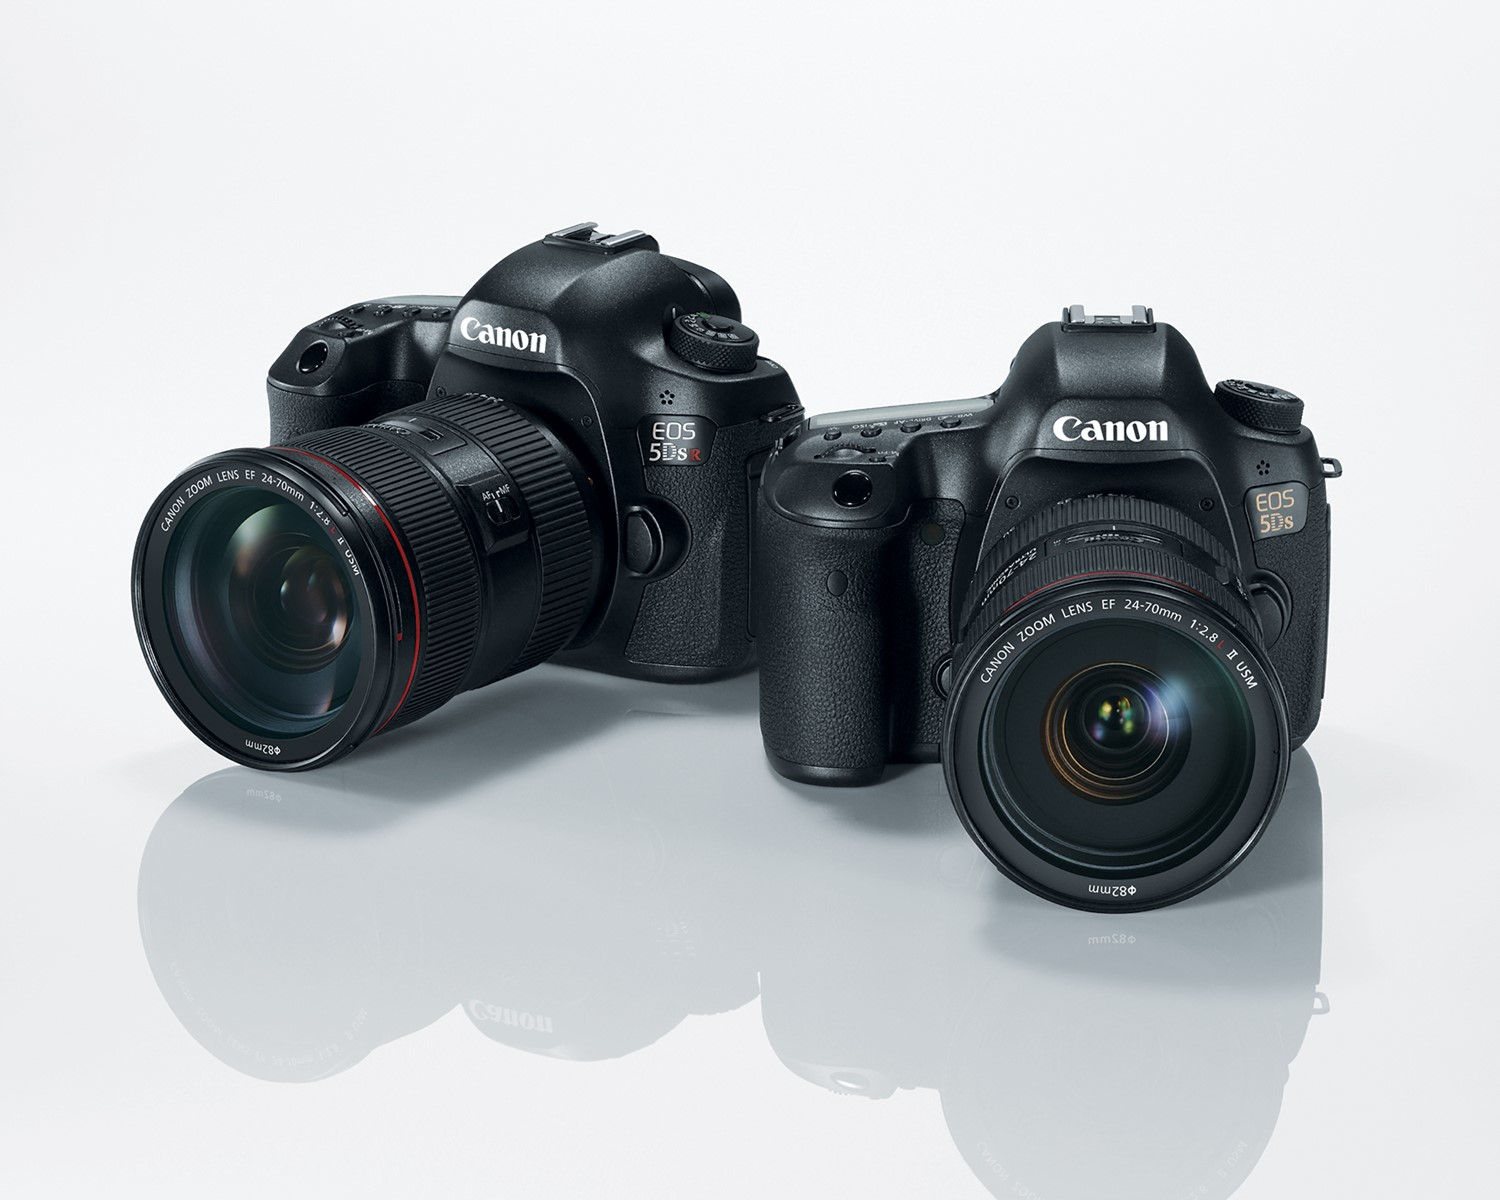 Canon Eos 5ds And 5ds R 50 6 Megapixel Full Frame Cmos